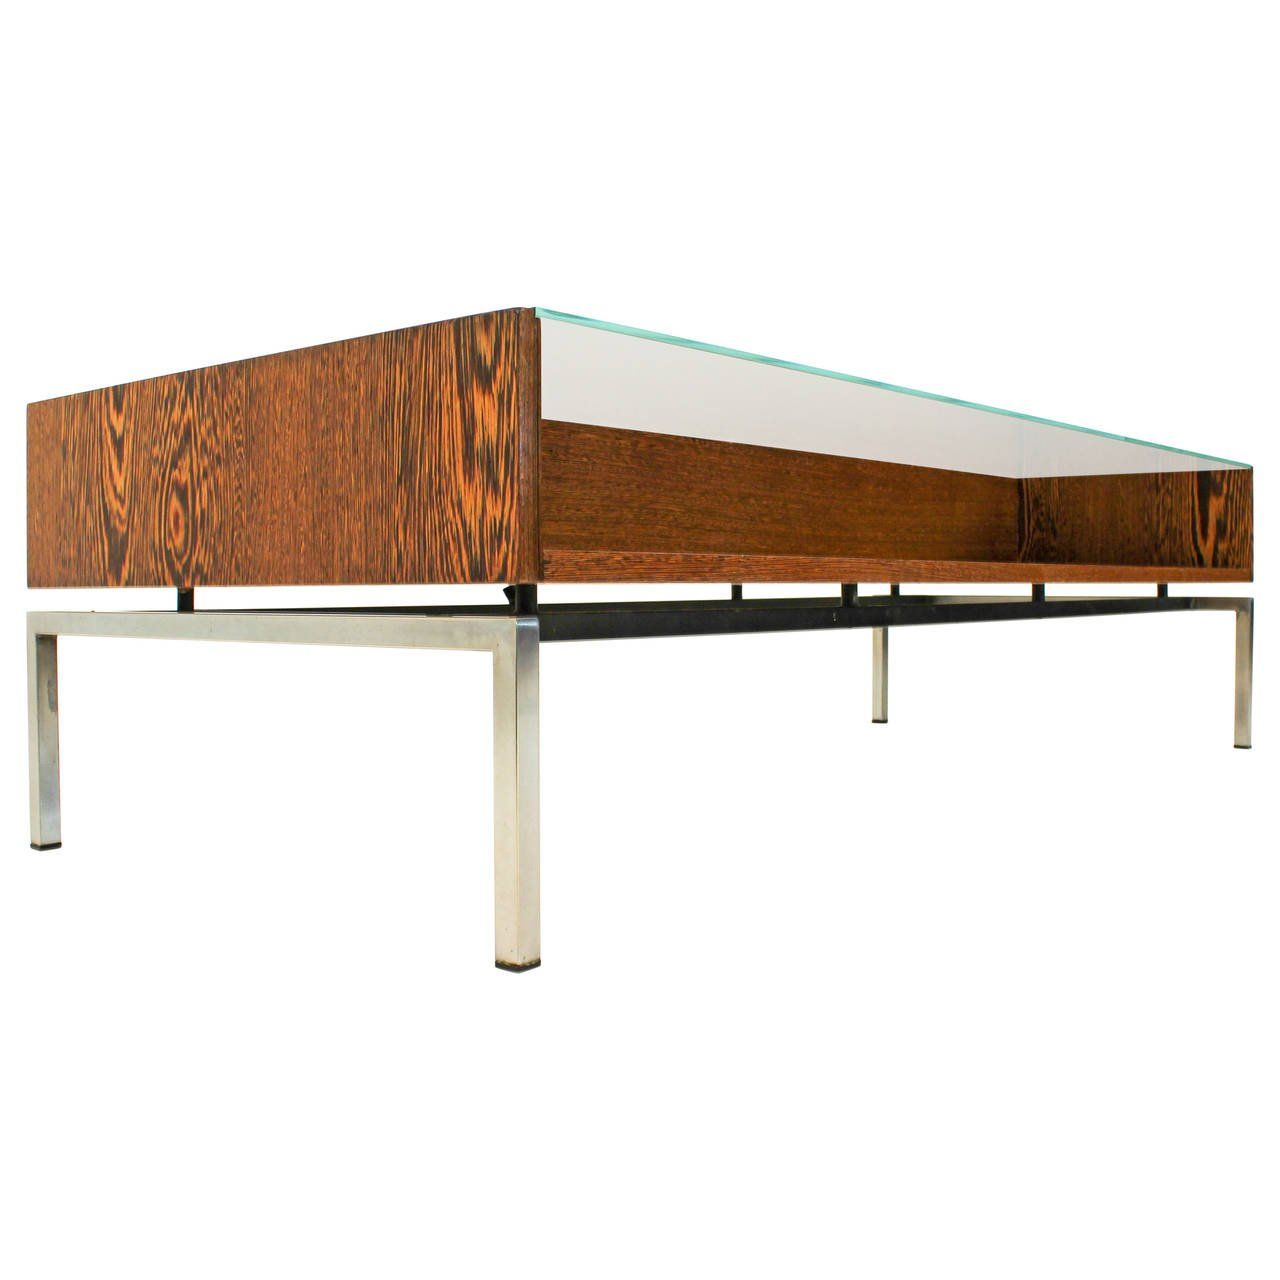 Stylish MidCentury Modern Coffee Table With Glass Top 1960s